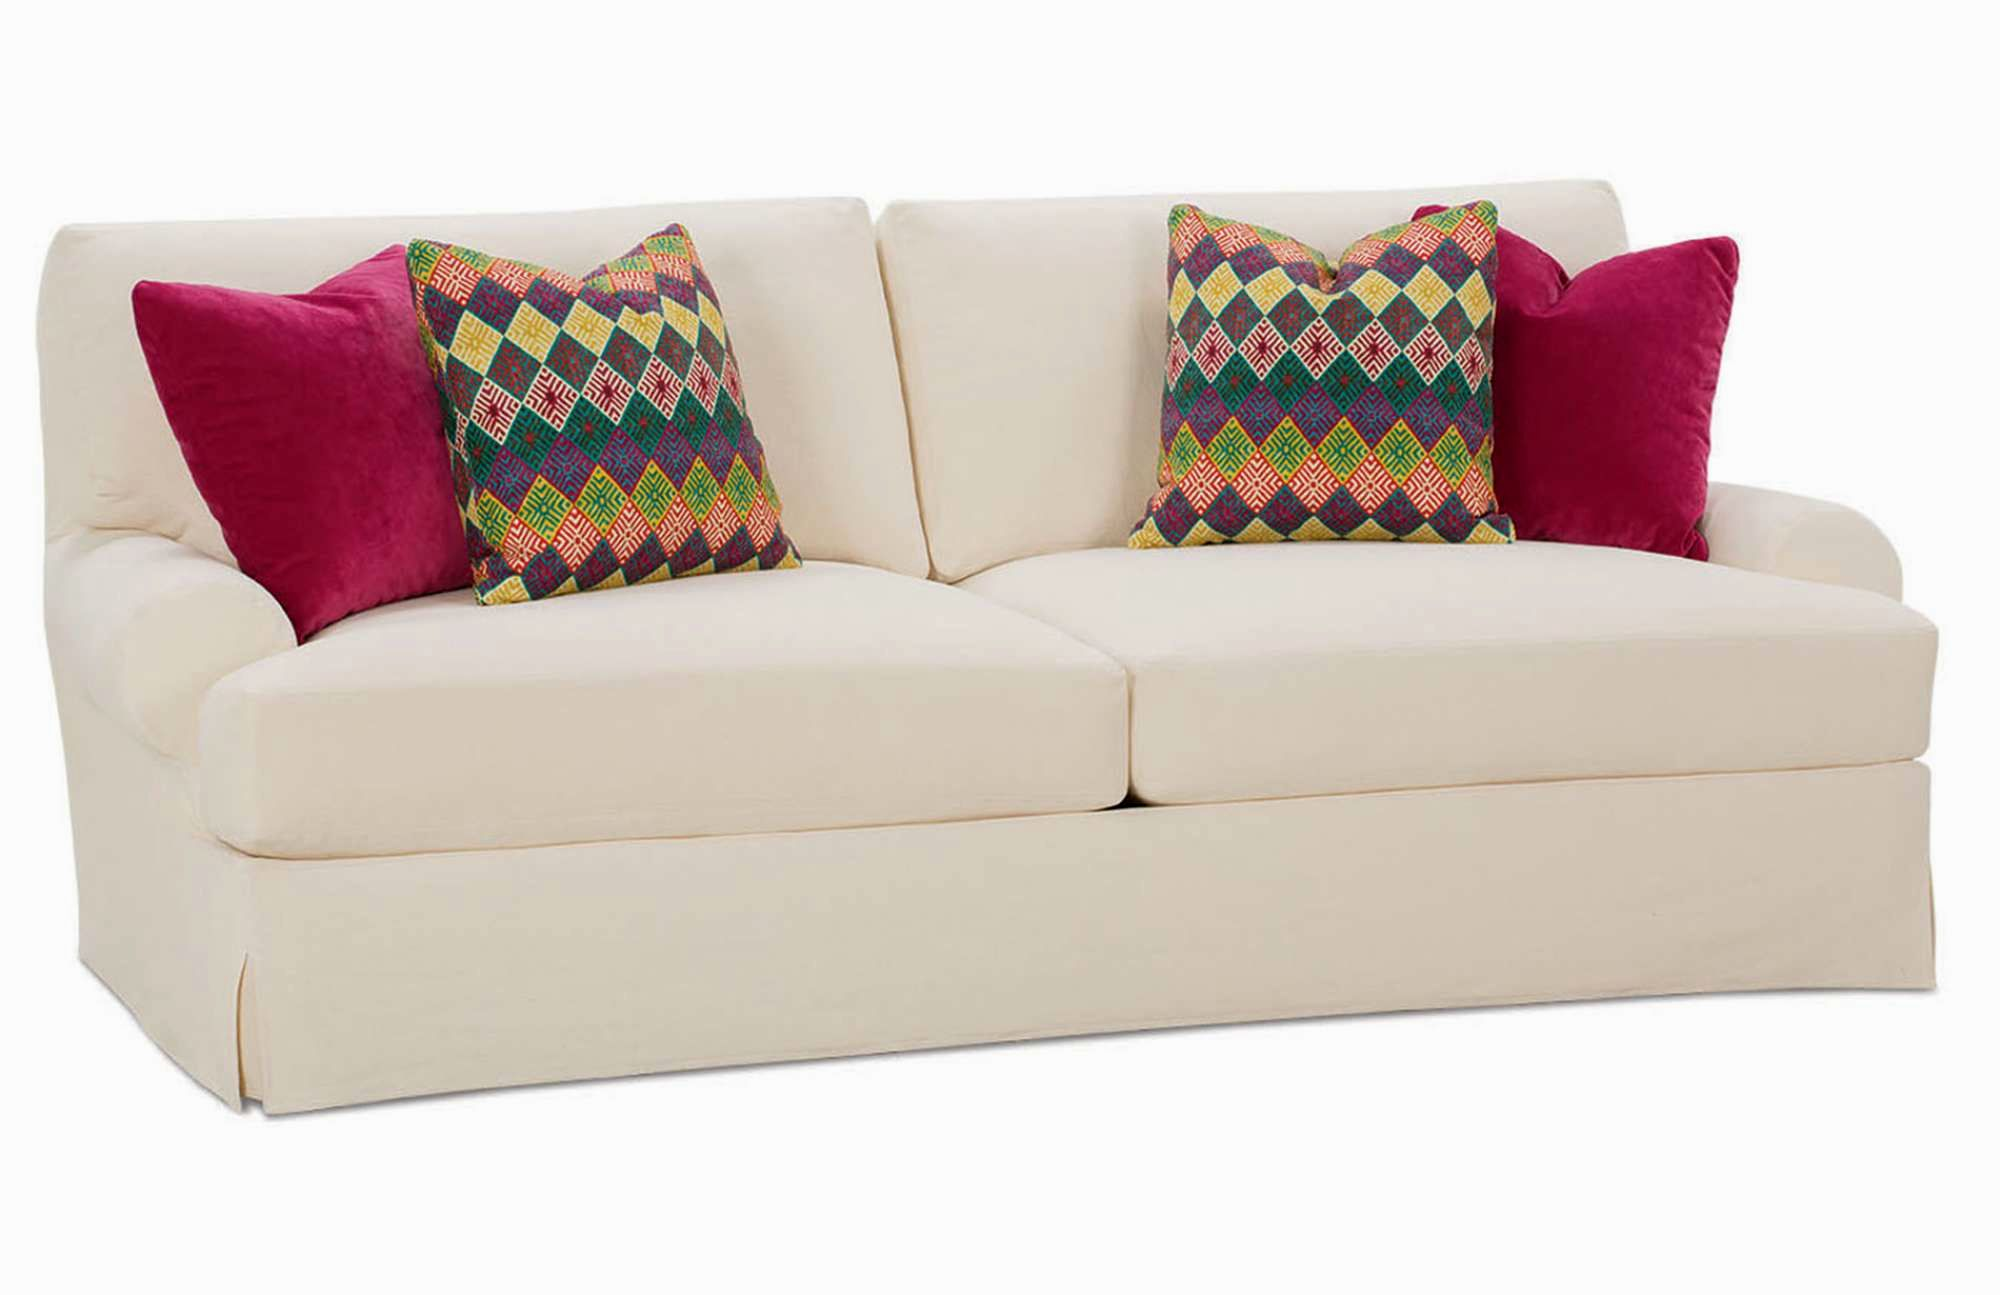 terrific sofa beds clearance photo-Sensational sofa Beds Clearance Pattern